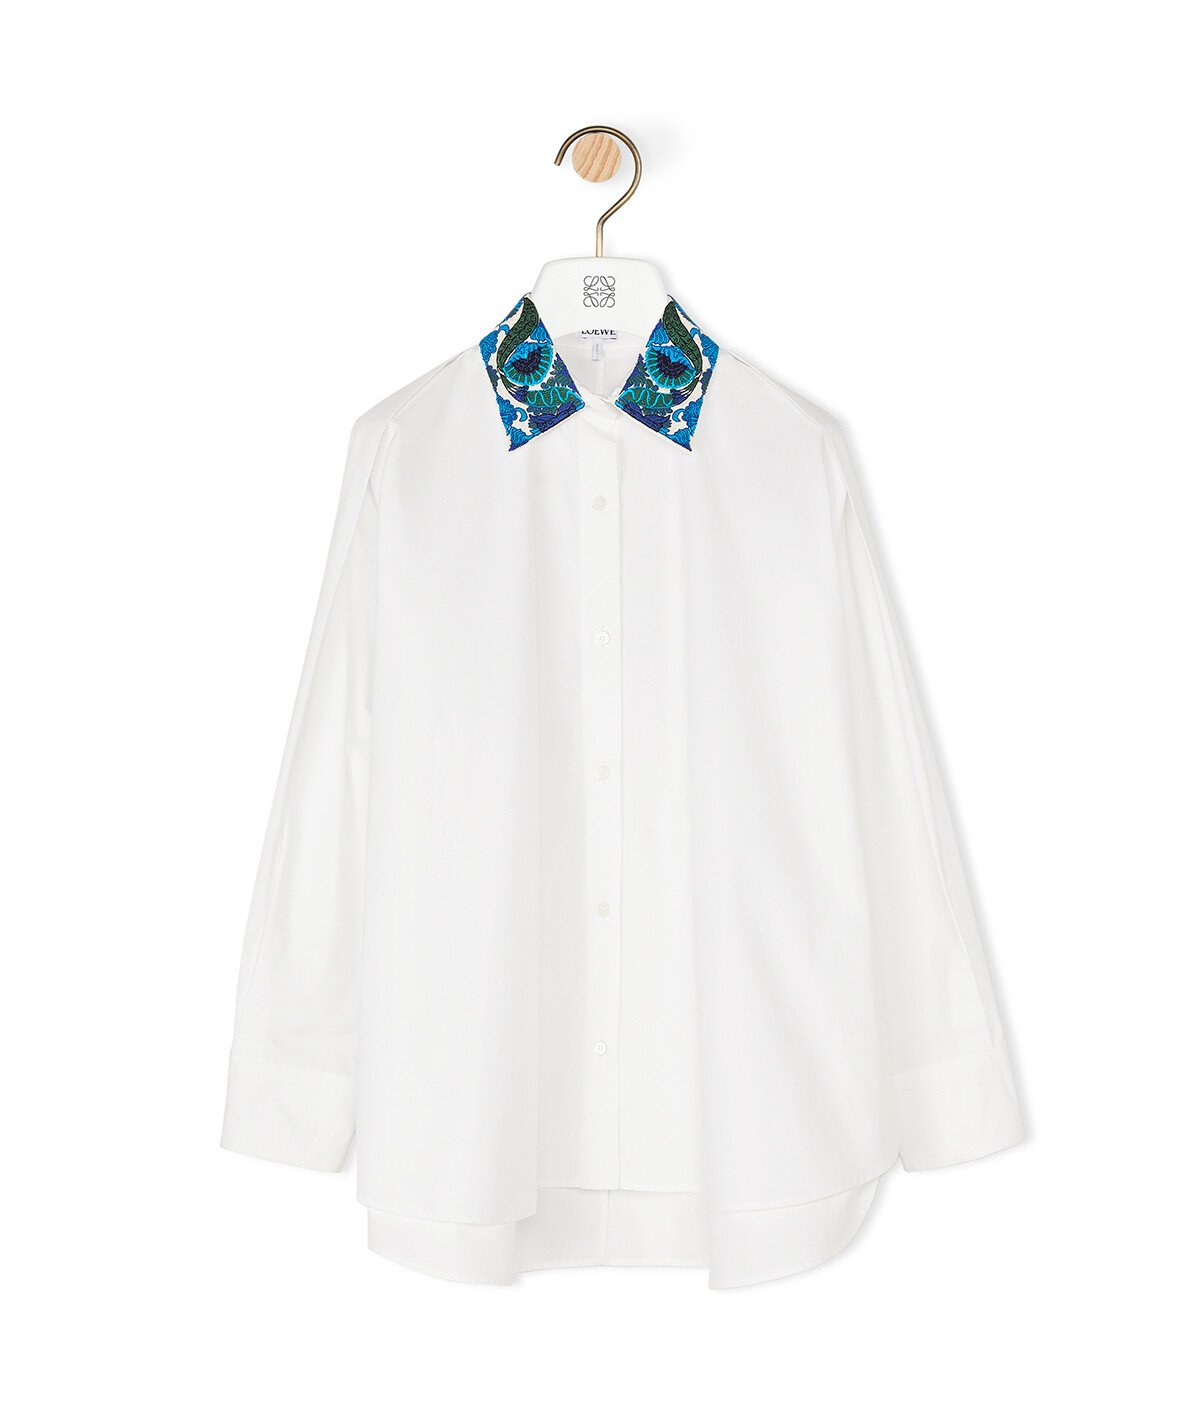 LOEWE Embroidered Collar Shirt White front